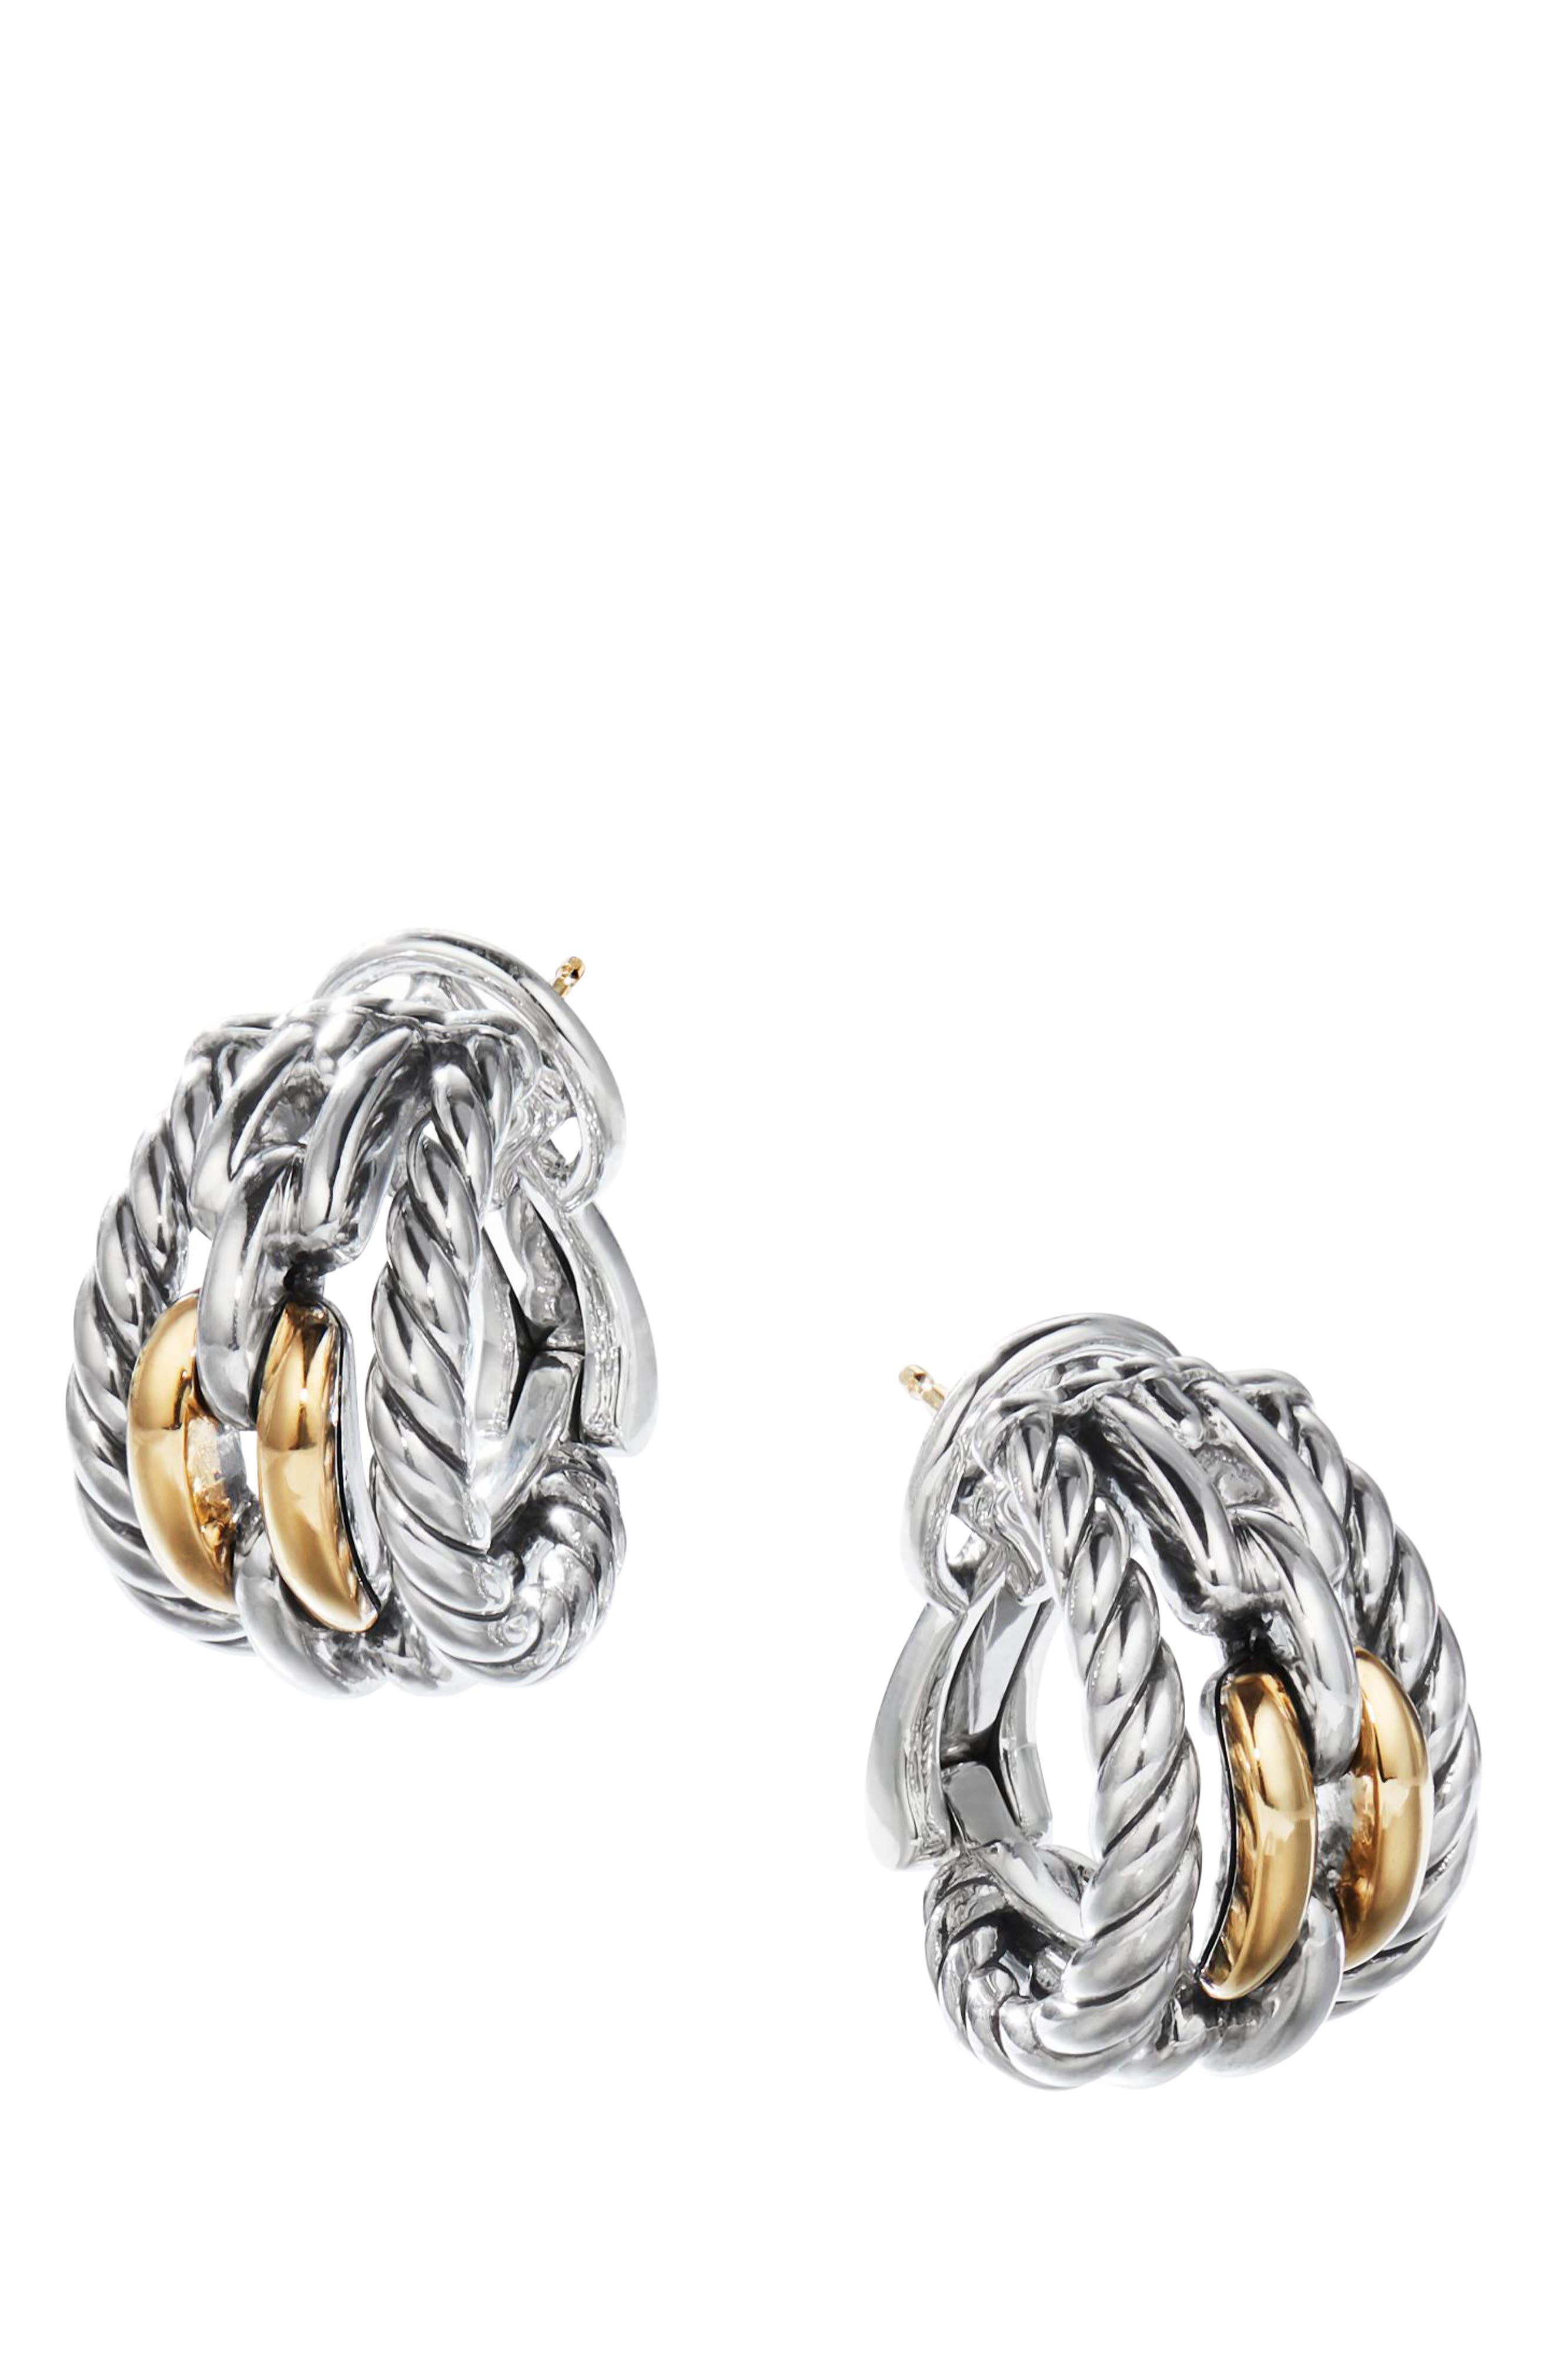 Wellesley Link Hoop Earrings with 18K Gold,                             Main thumbnail 1, color,                             18K YELLOW GOLD/ SILVER